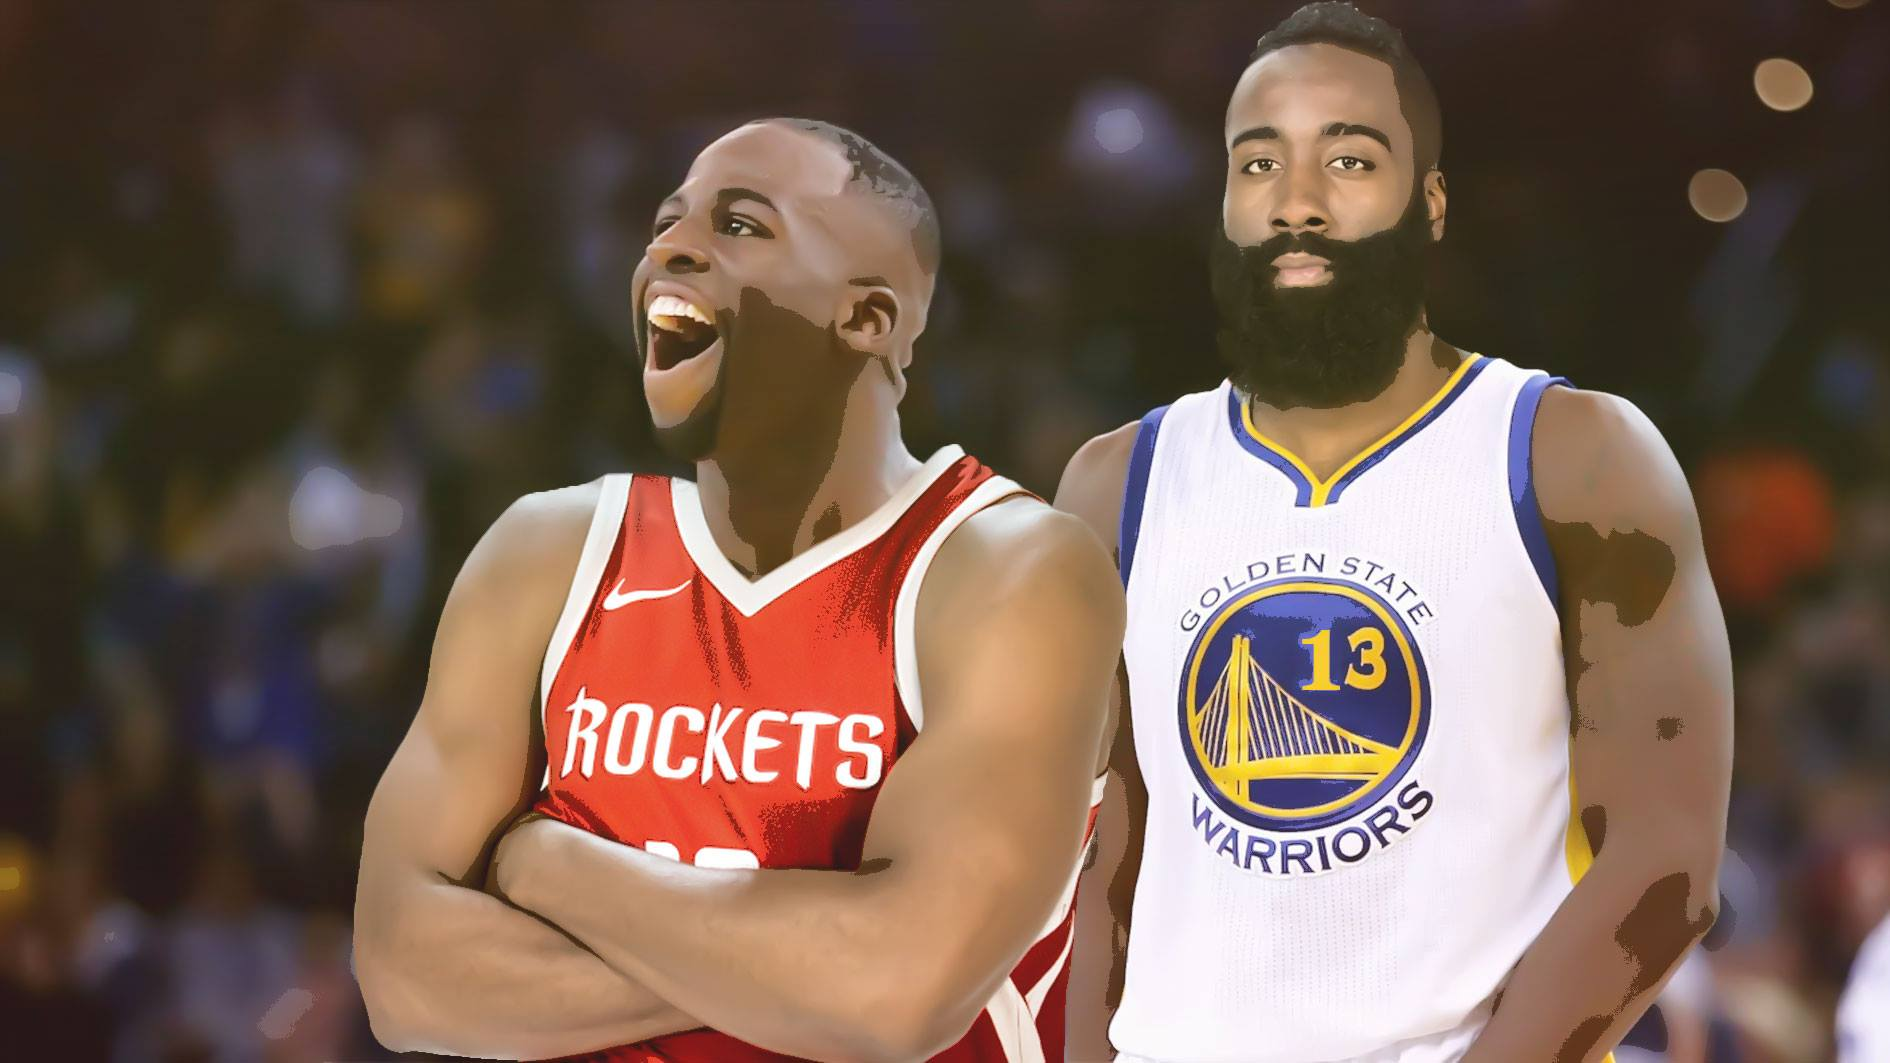 Rockets, Warriors, James Harden, Draymond Green